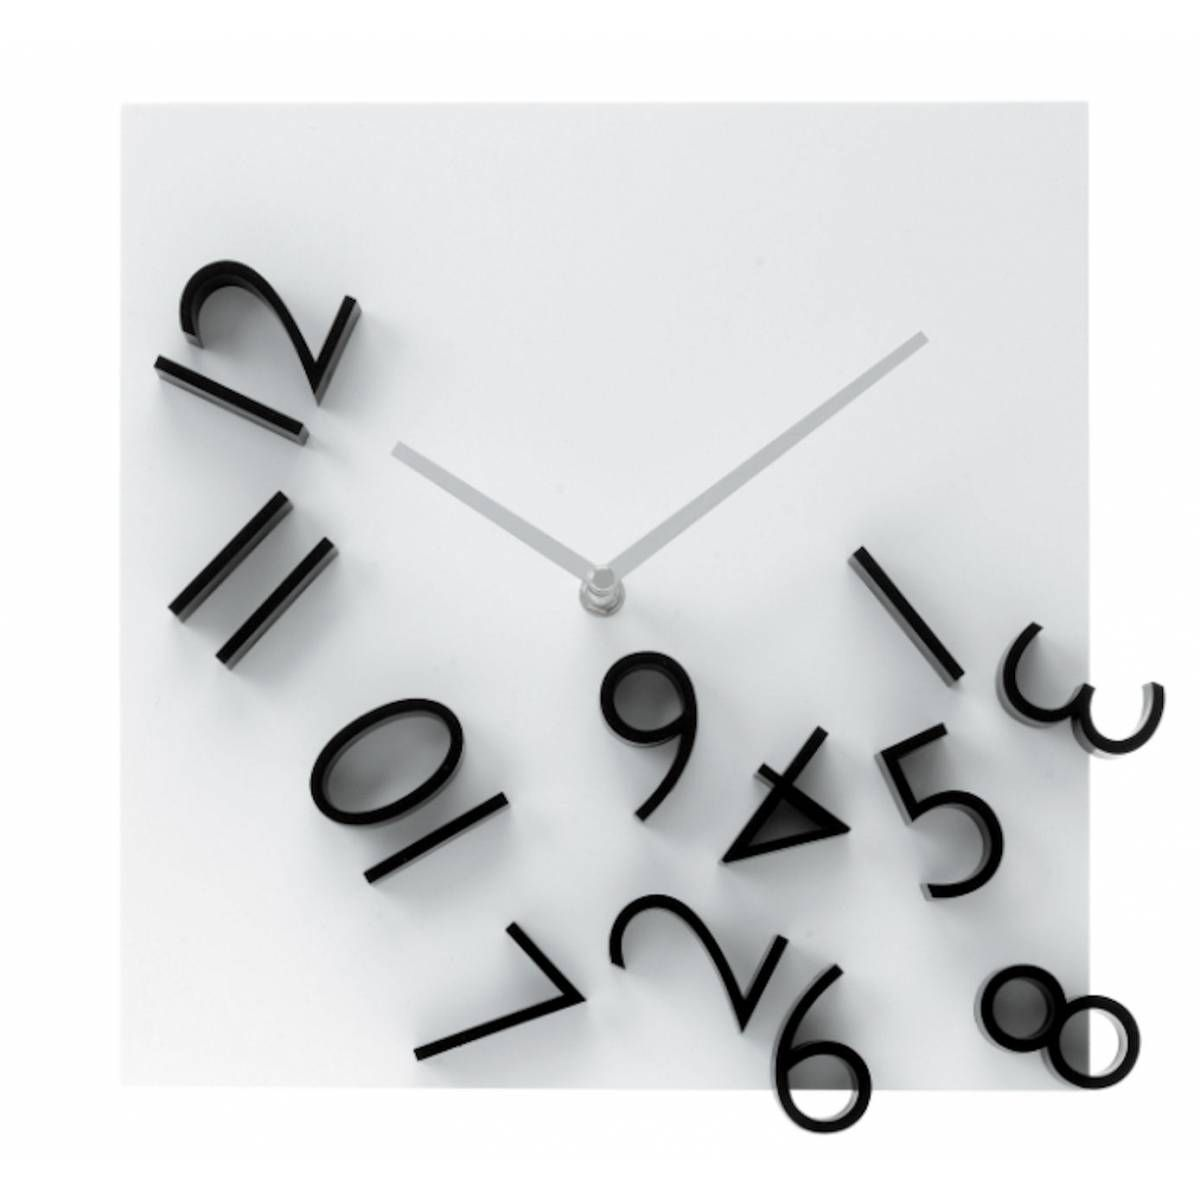 Image detail for home clocks karlsson falling numbers wall image detail for home clocks karlsson falling numbers wall clock amipublicfo Gallery